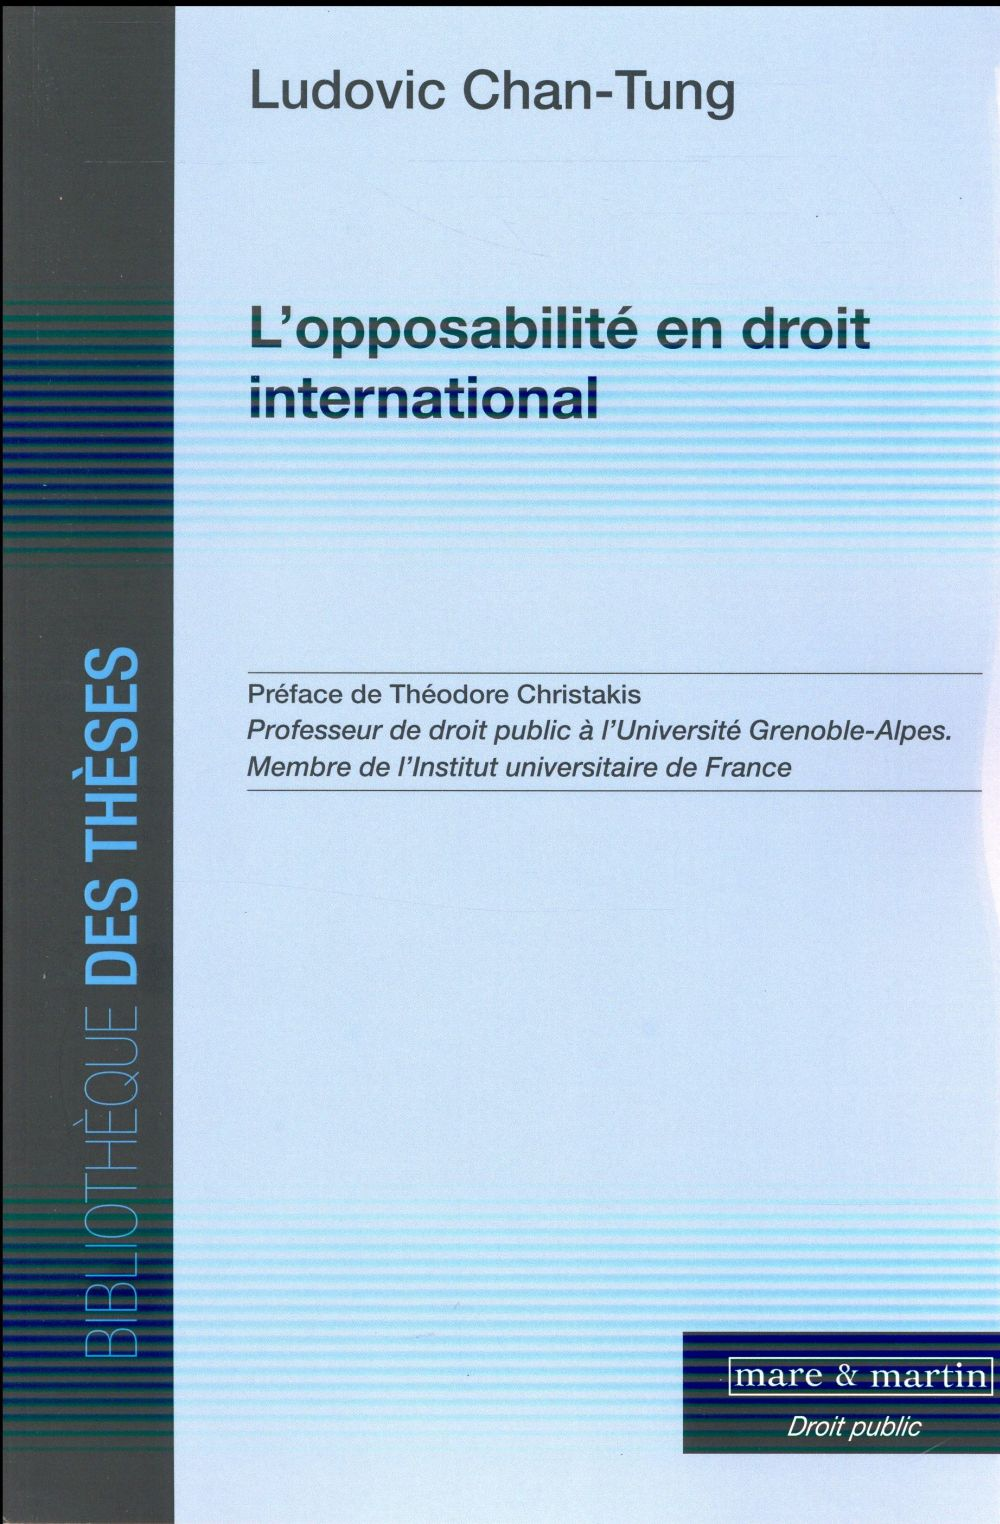 L'OPPOSABILITE EN DROIT INTERNATIONAL